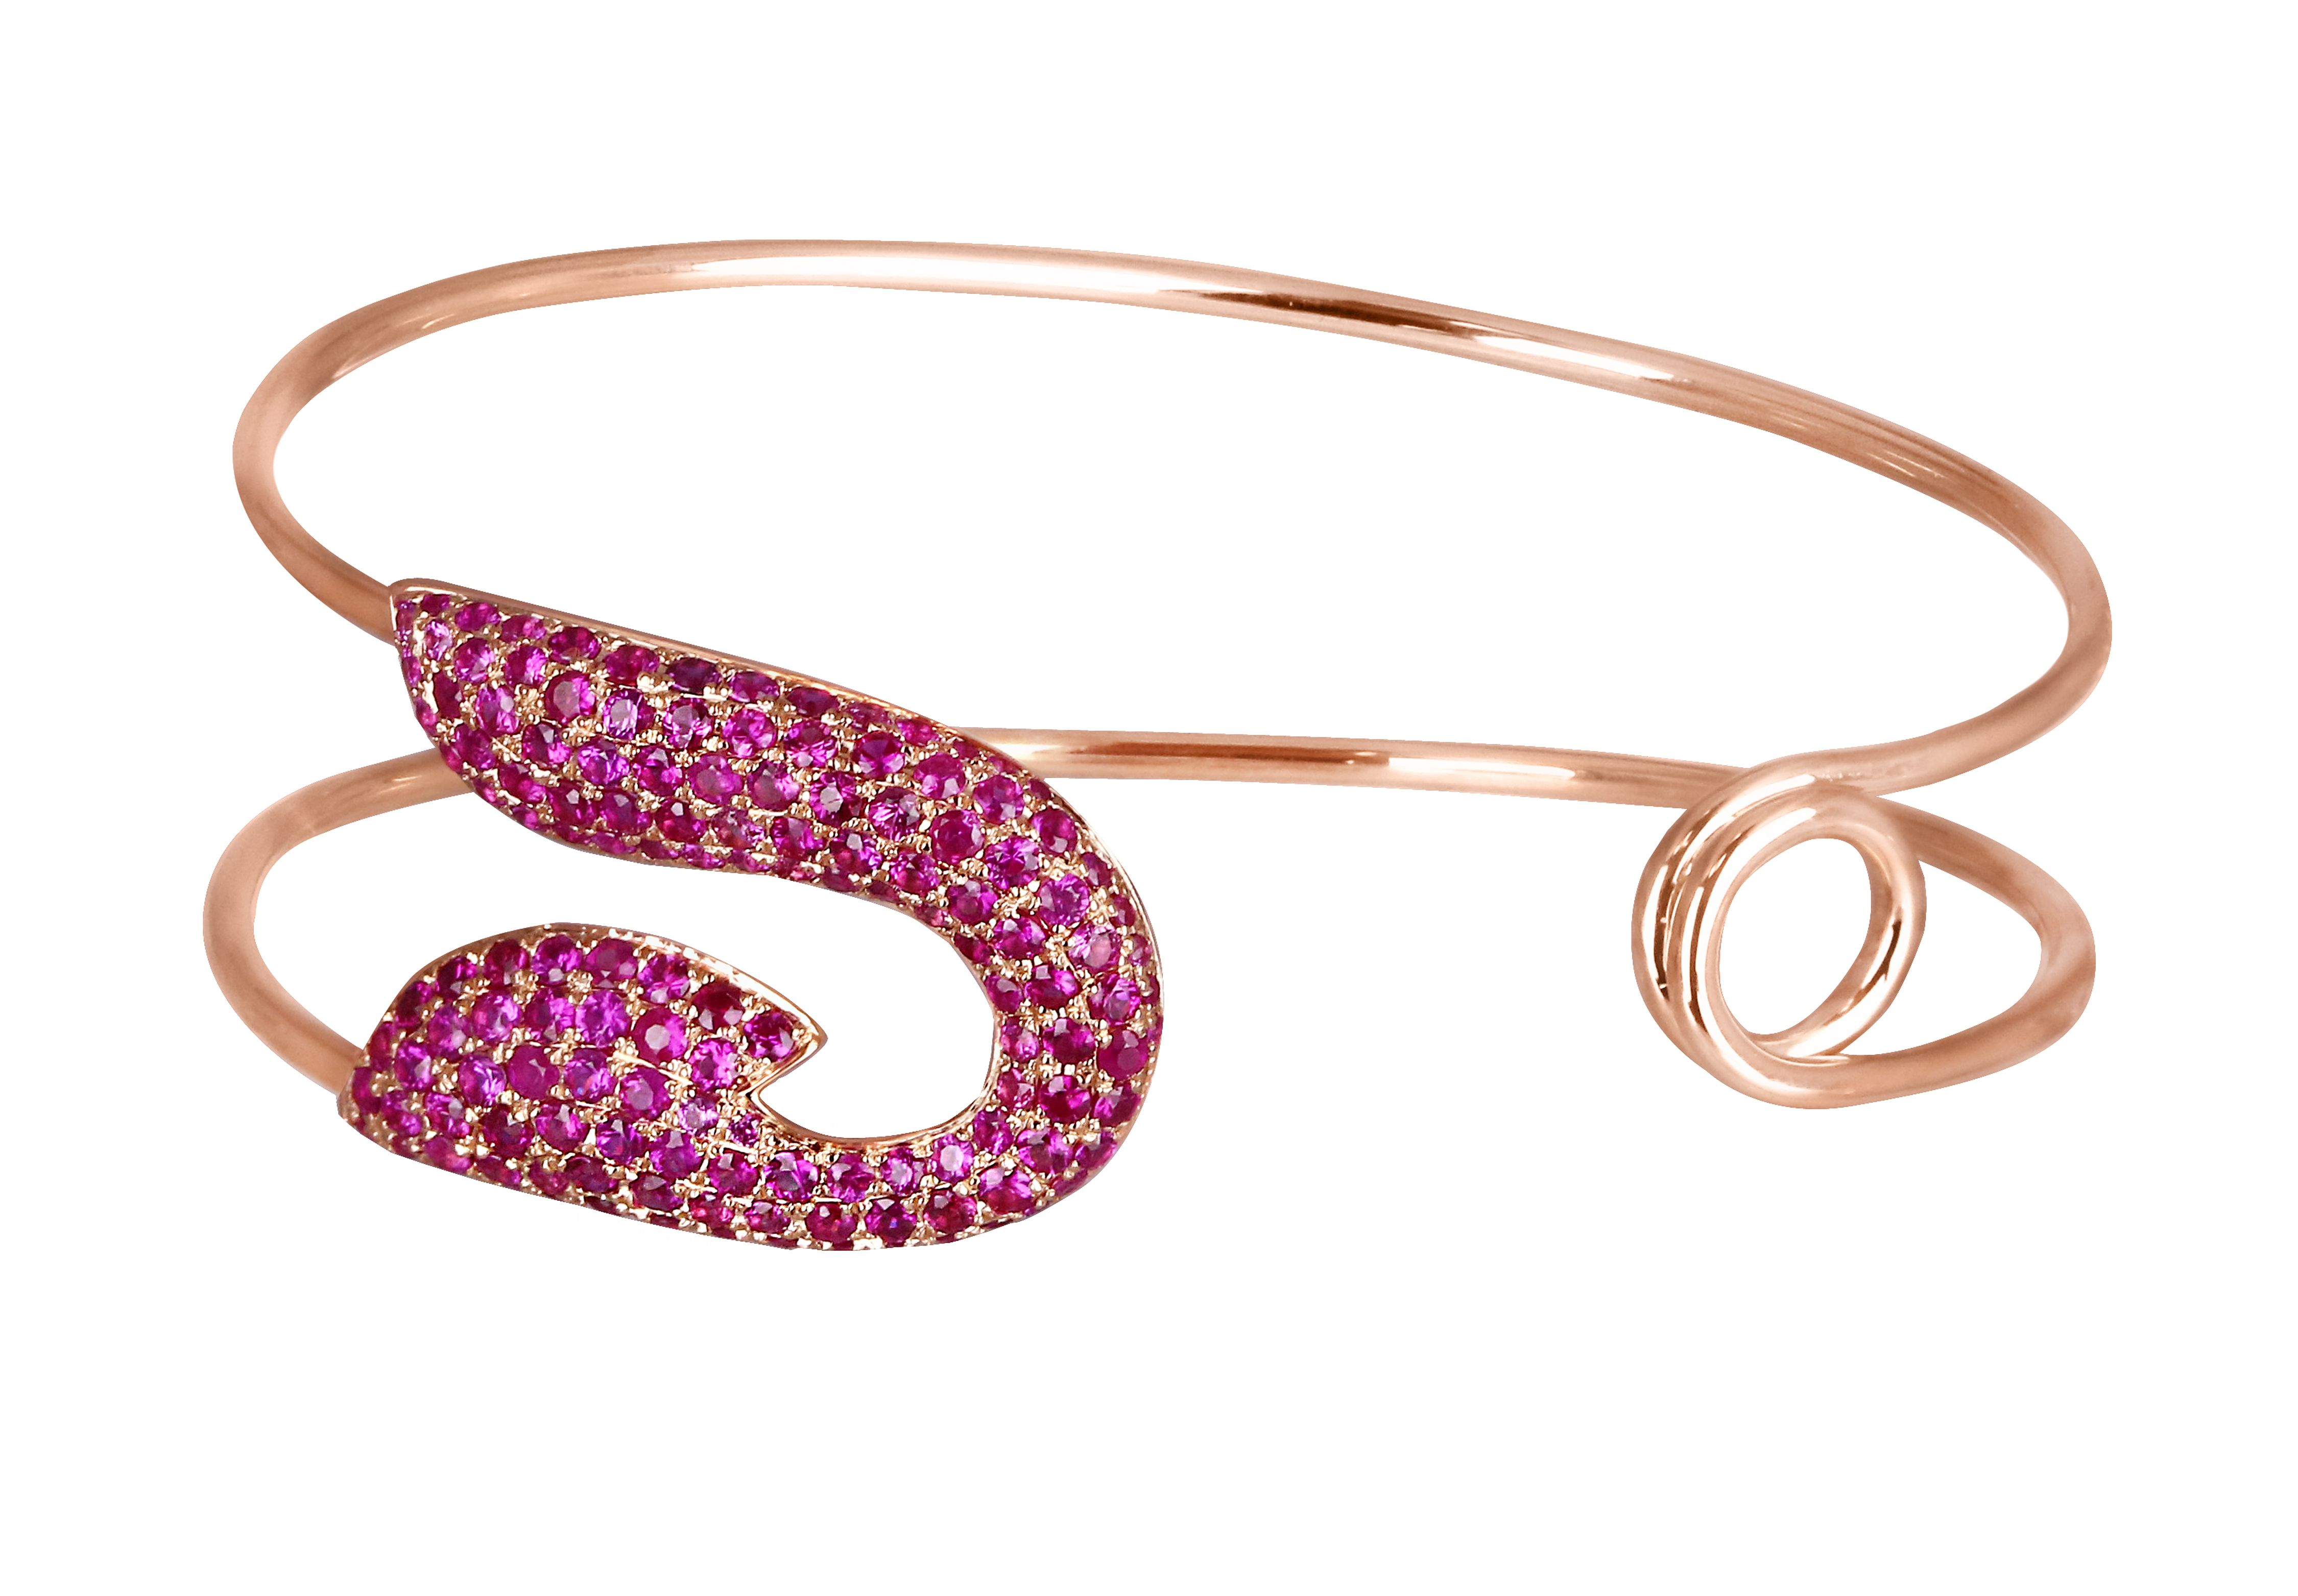 Jacob cos safety pin collection bracelet in rose gold